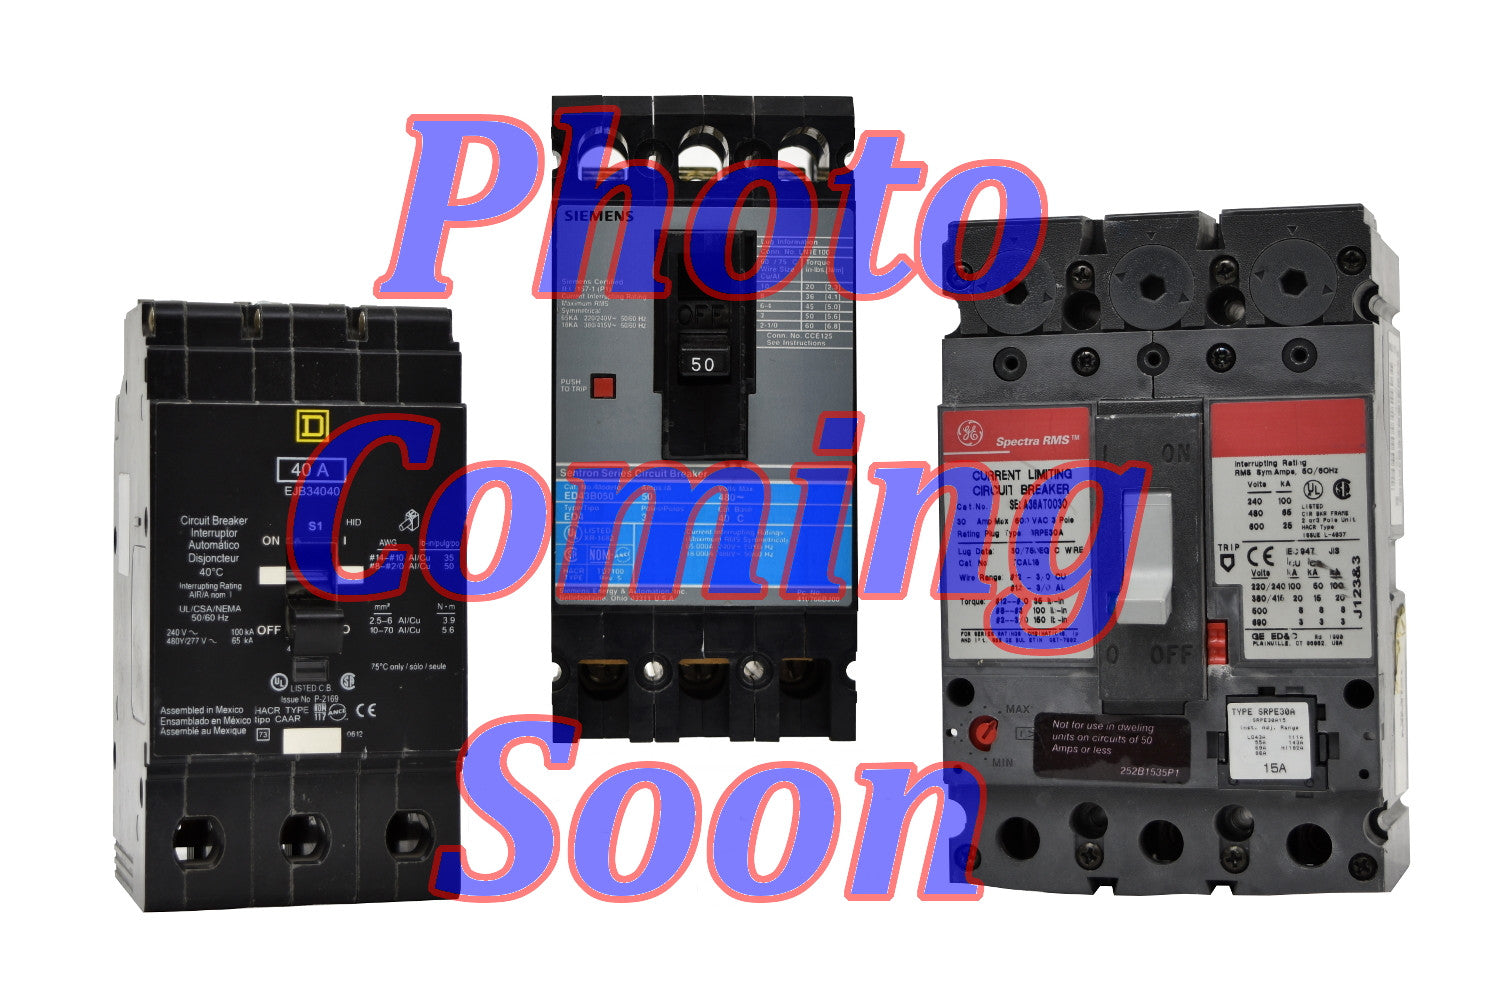 General Electric FCN36TE015R2 Circuit Breakers